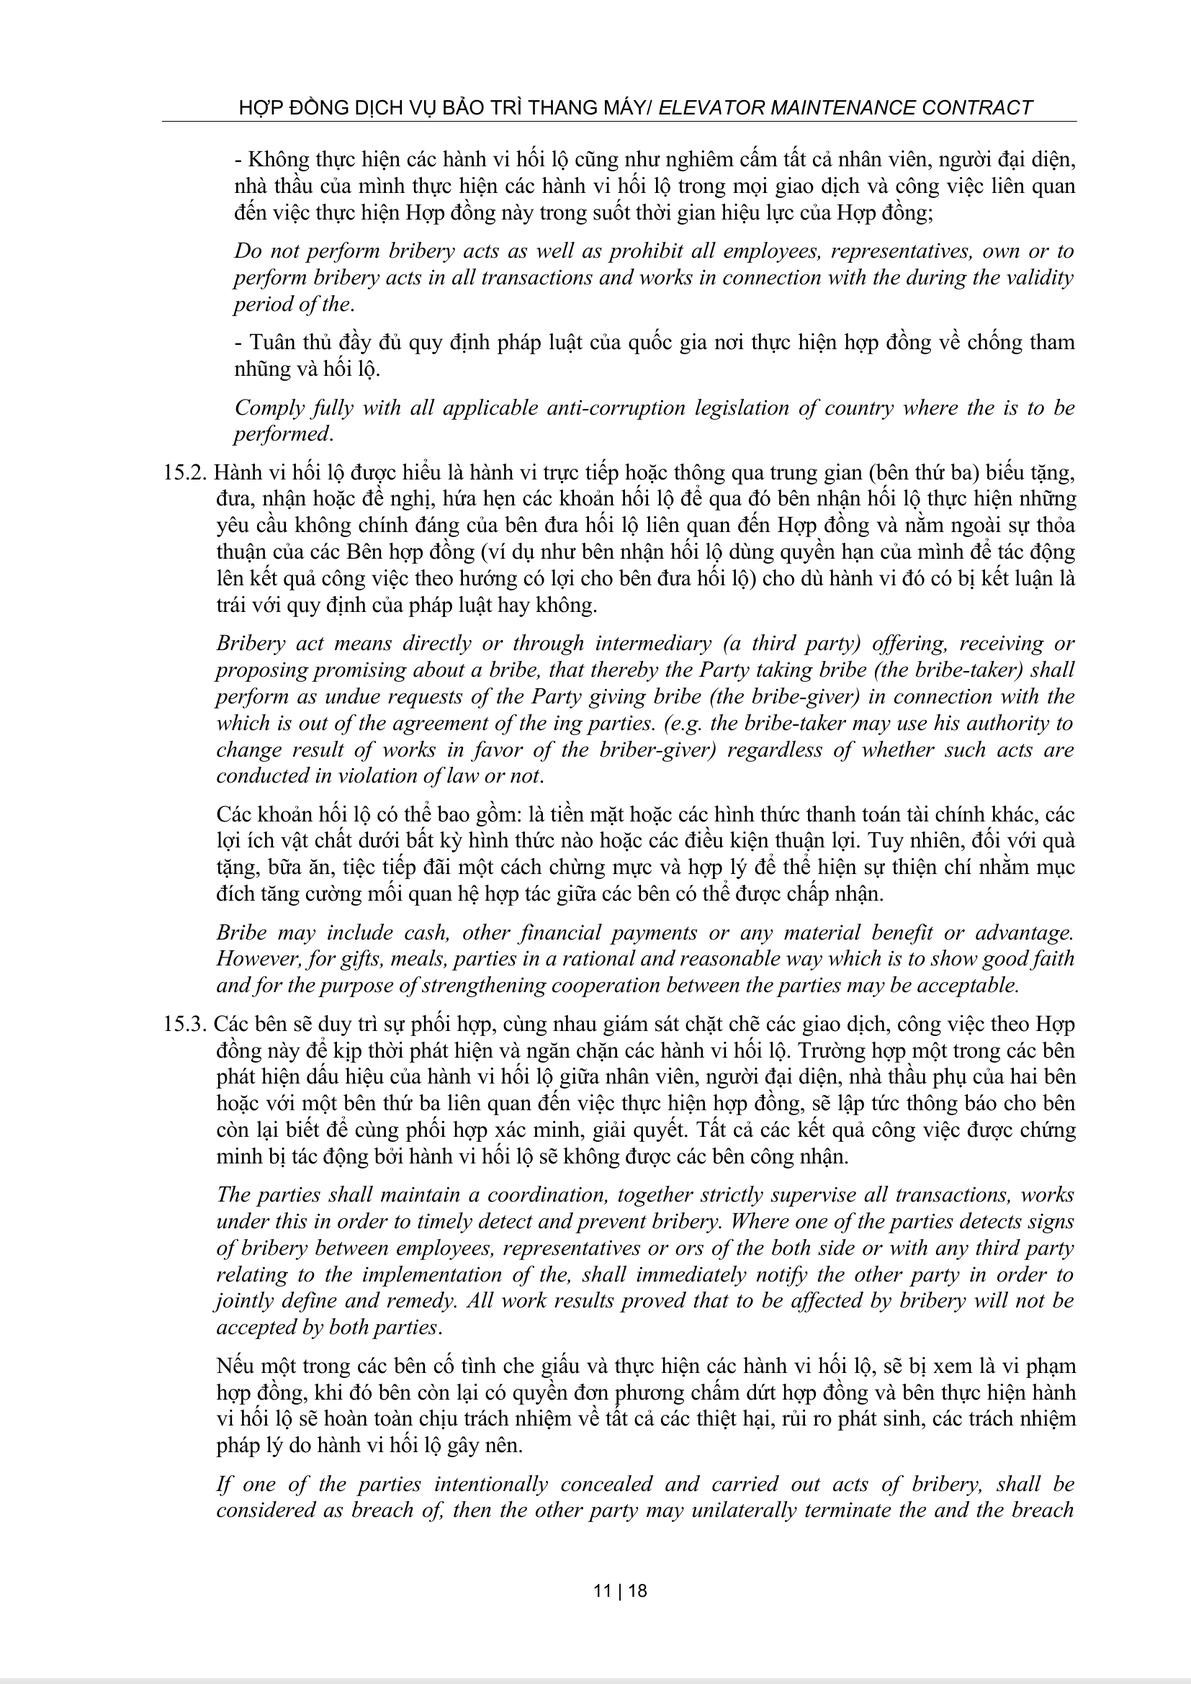 Maintenance Service Agreement-10